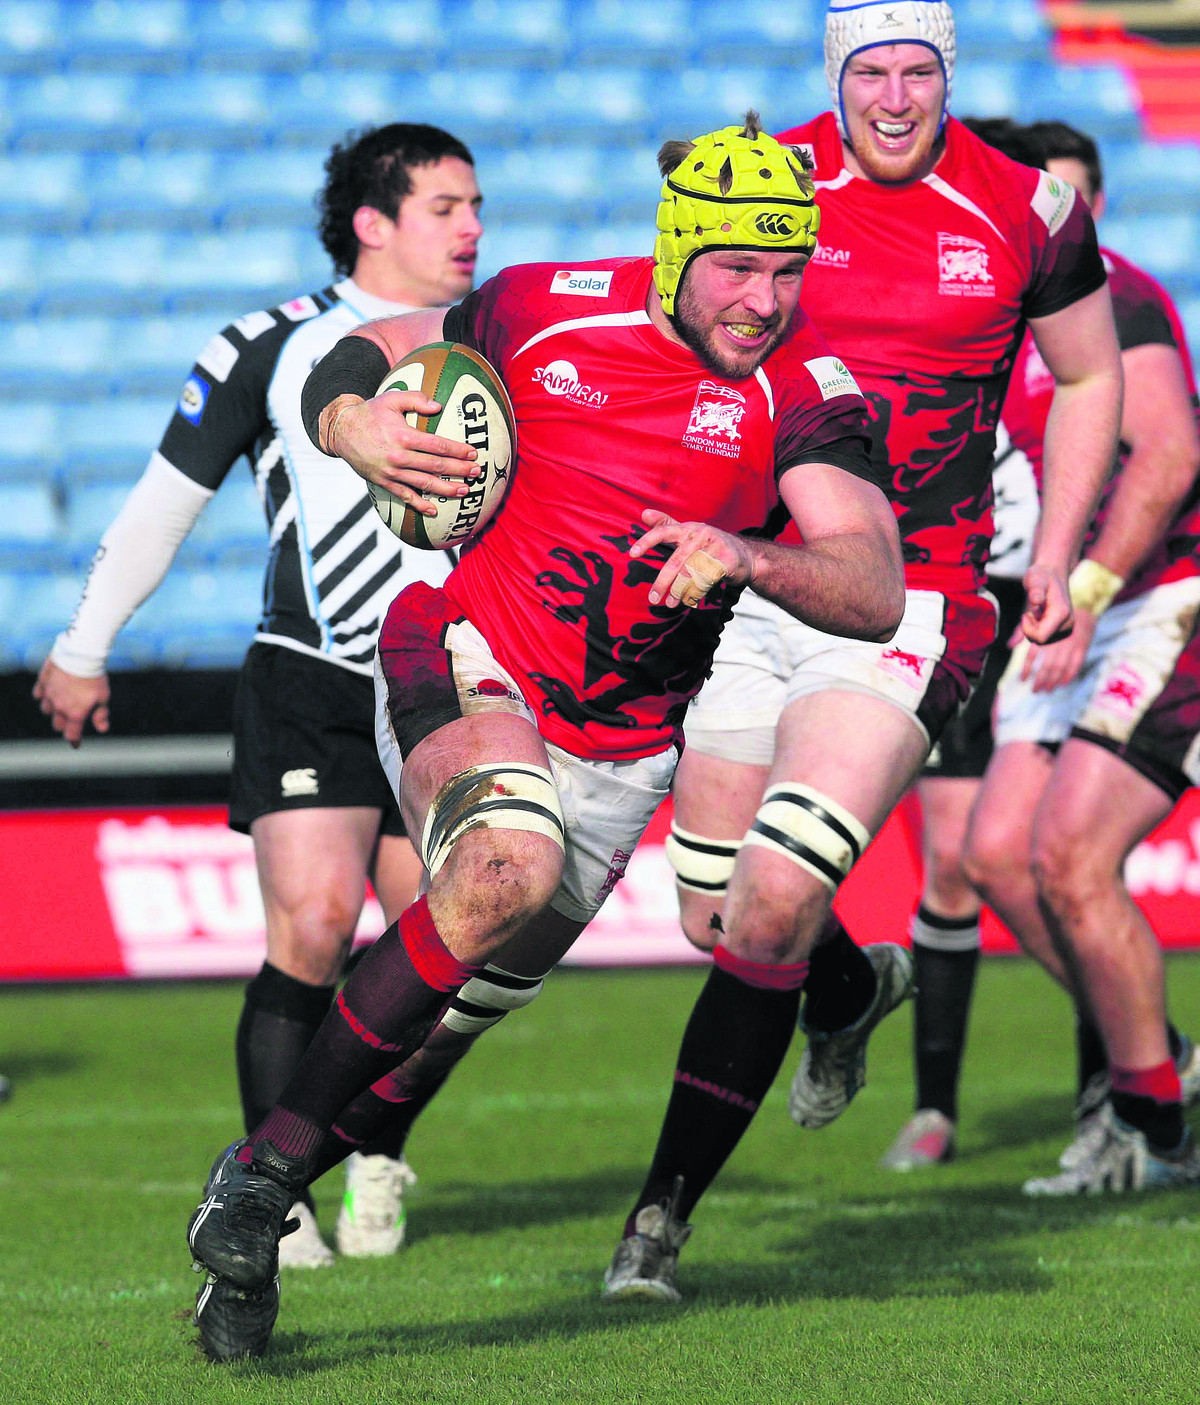 London Welsh No 8 Richard Thorpe breaks into a big smile as he races behind the posts for their second try